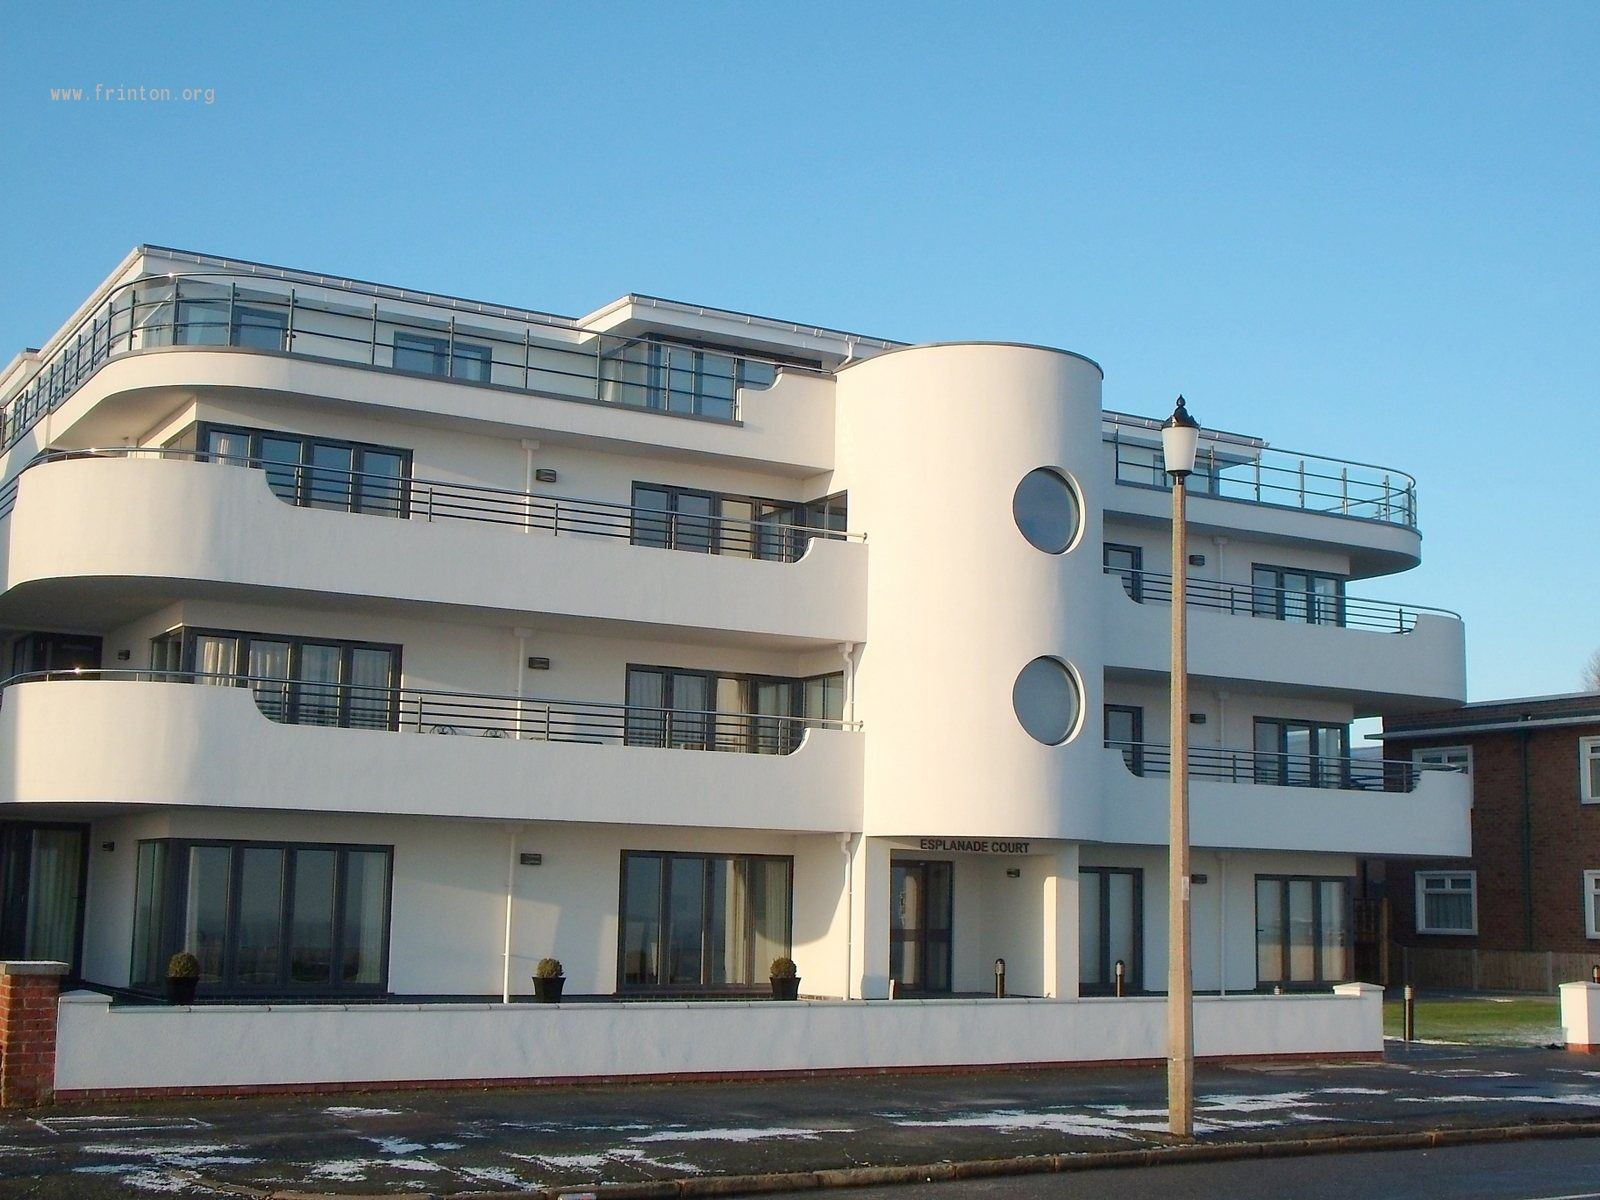 Art deco architecture frinton gallery photo new style building on also rh nl pinterest